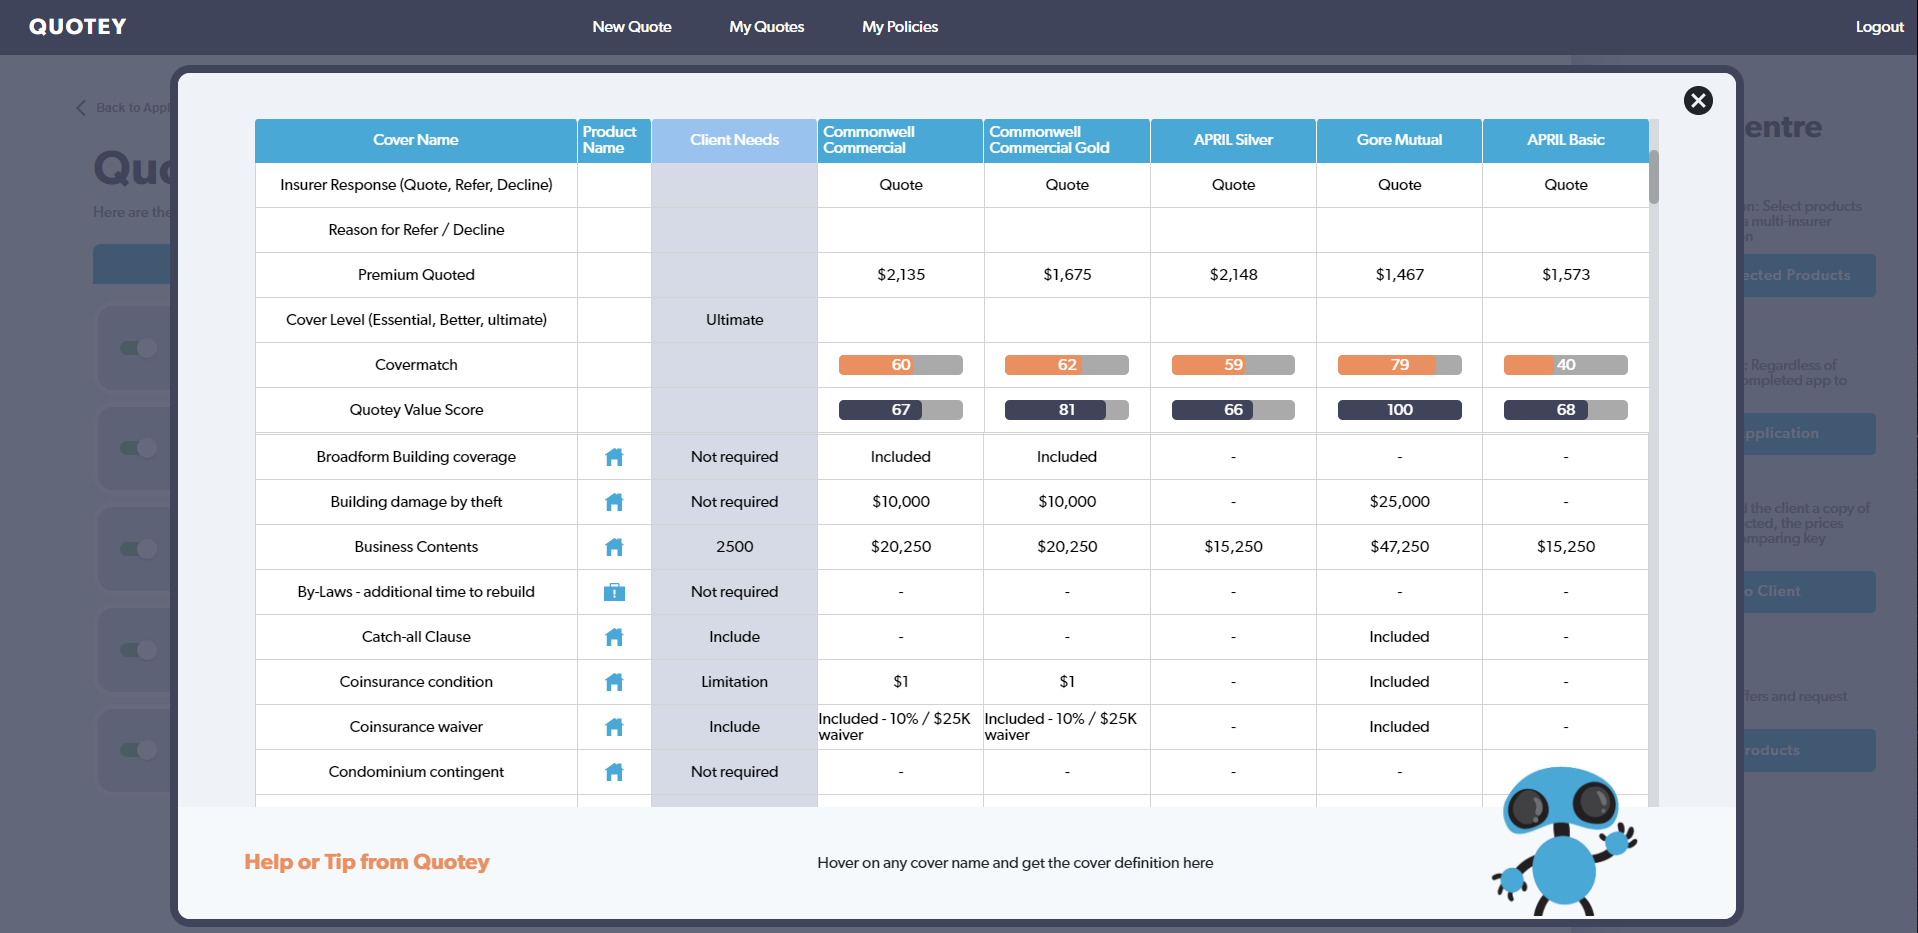 Compare multiple products and coverage levels across insurers